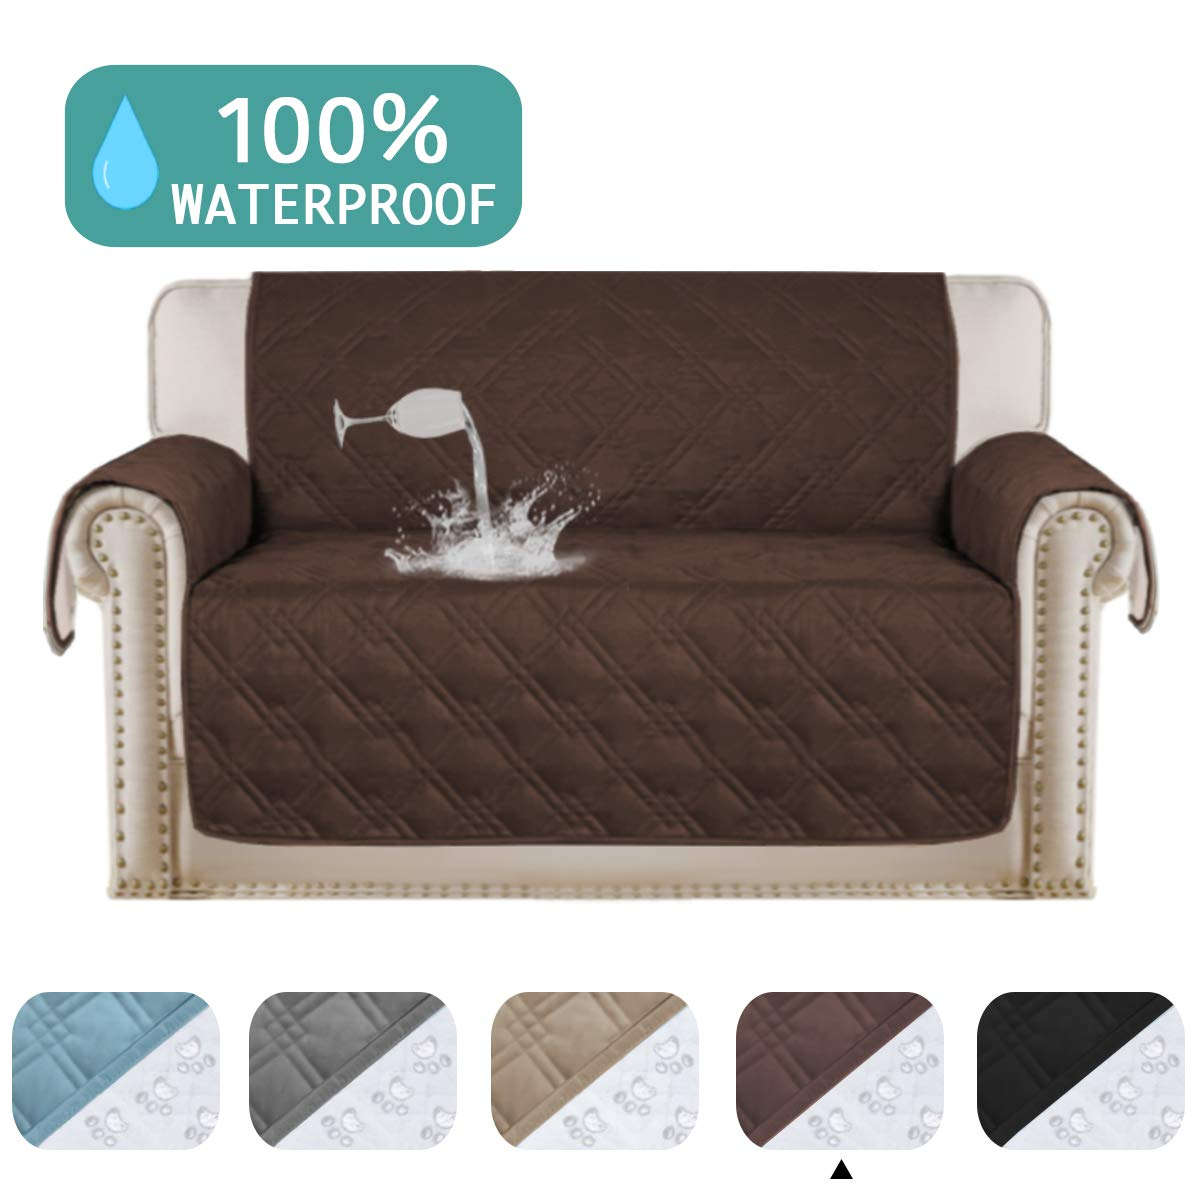 Awesome Turquoize 100 Waterproof Sofa Protector For Leather Couch Cover Slip Resistant Quilted Pet Furniture Covers Brown Protector Cover Non Slip Great For Machost Co Dining Chair Design Ideas Machostcouk